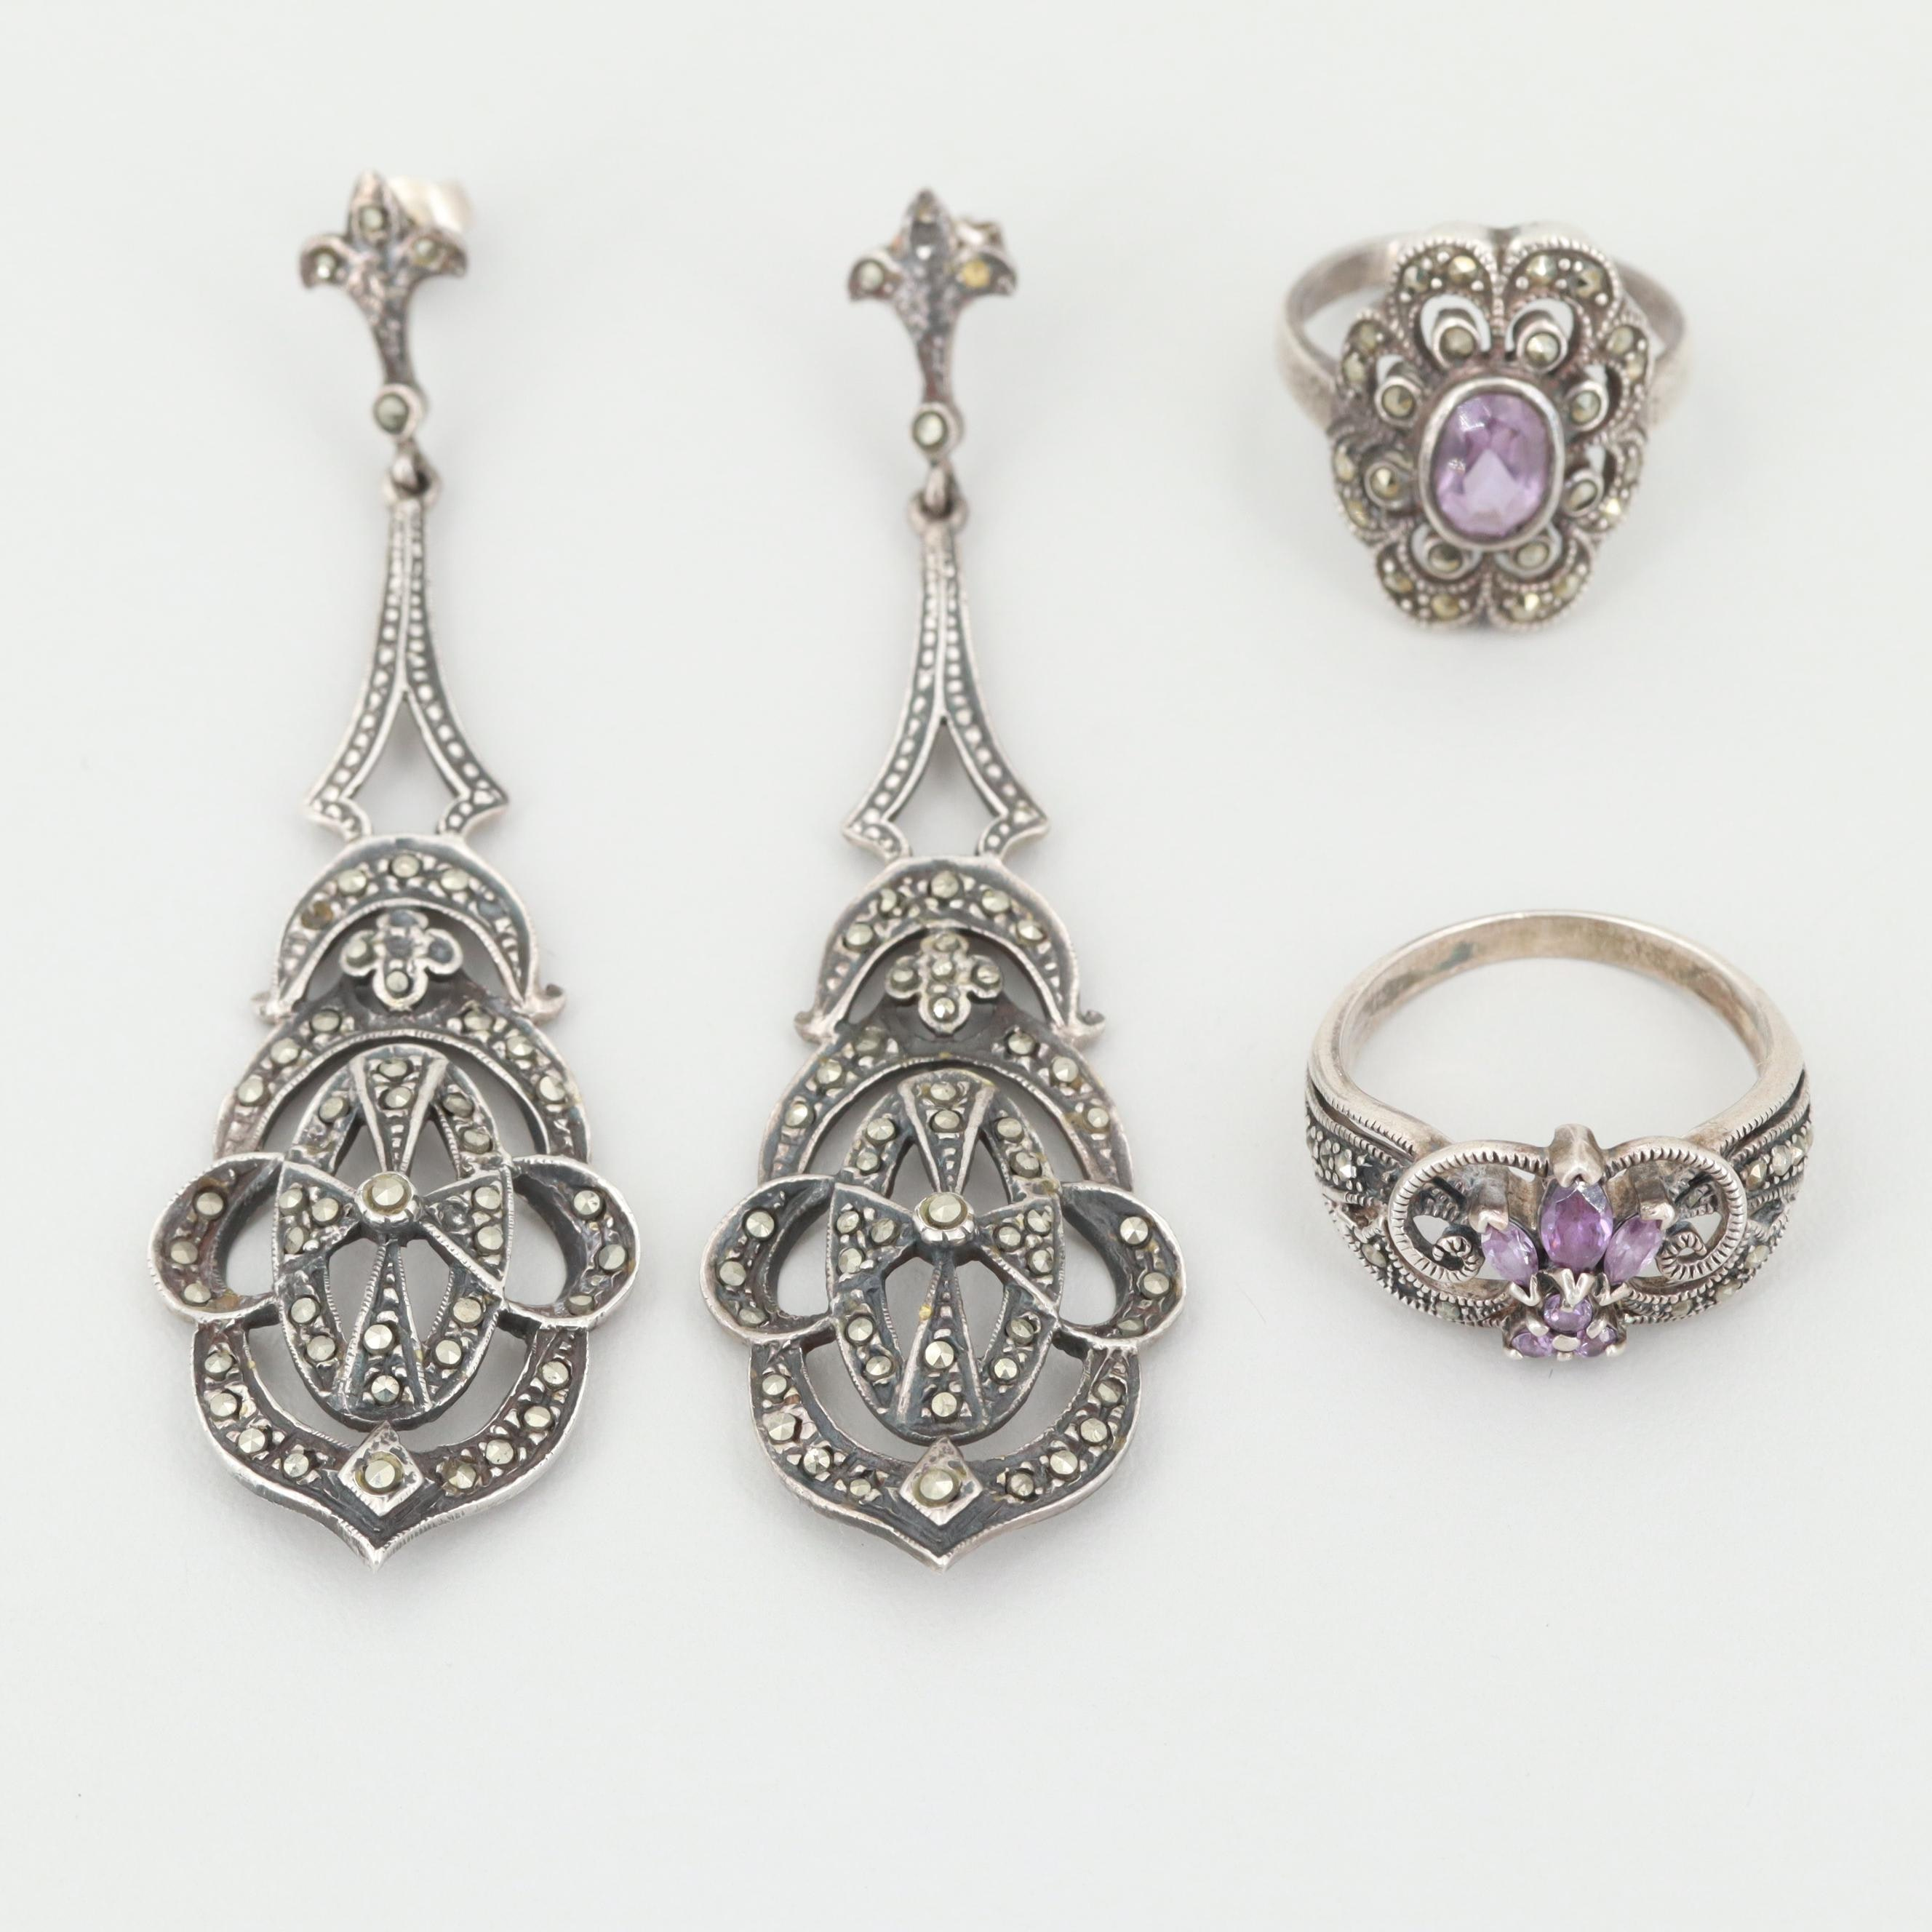 Art Deco Inspired Sterling Silver Amethyst and Marcasite Rings and Earrings